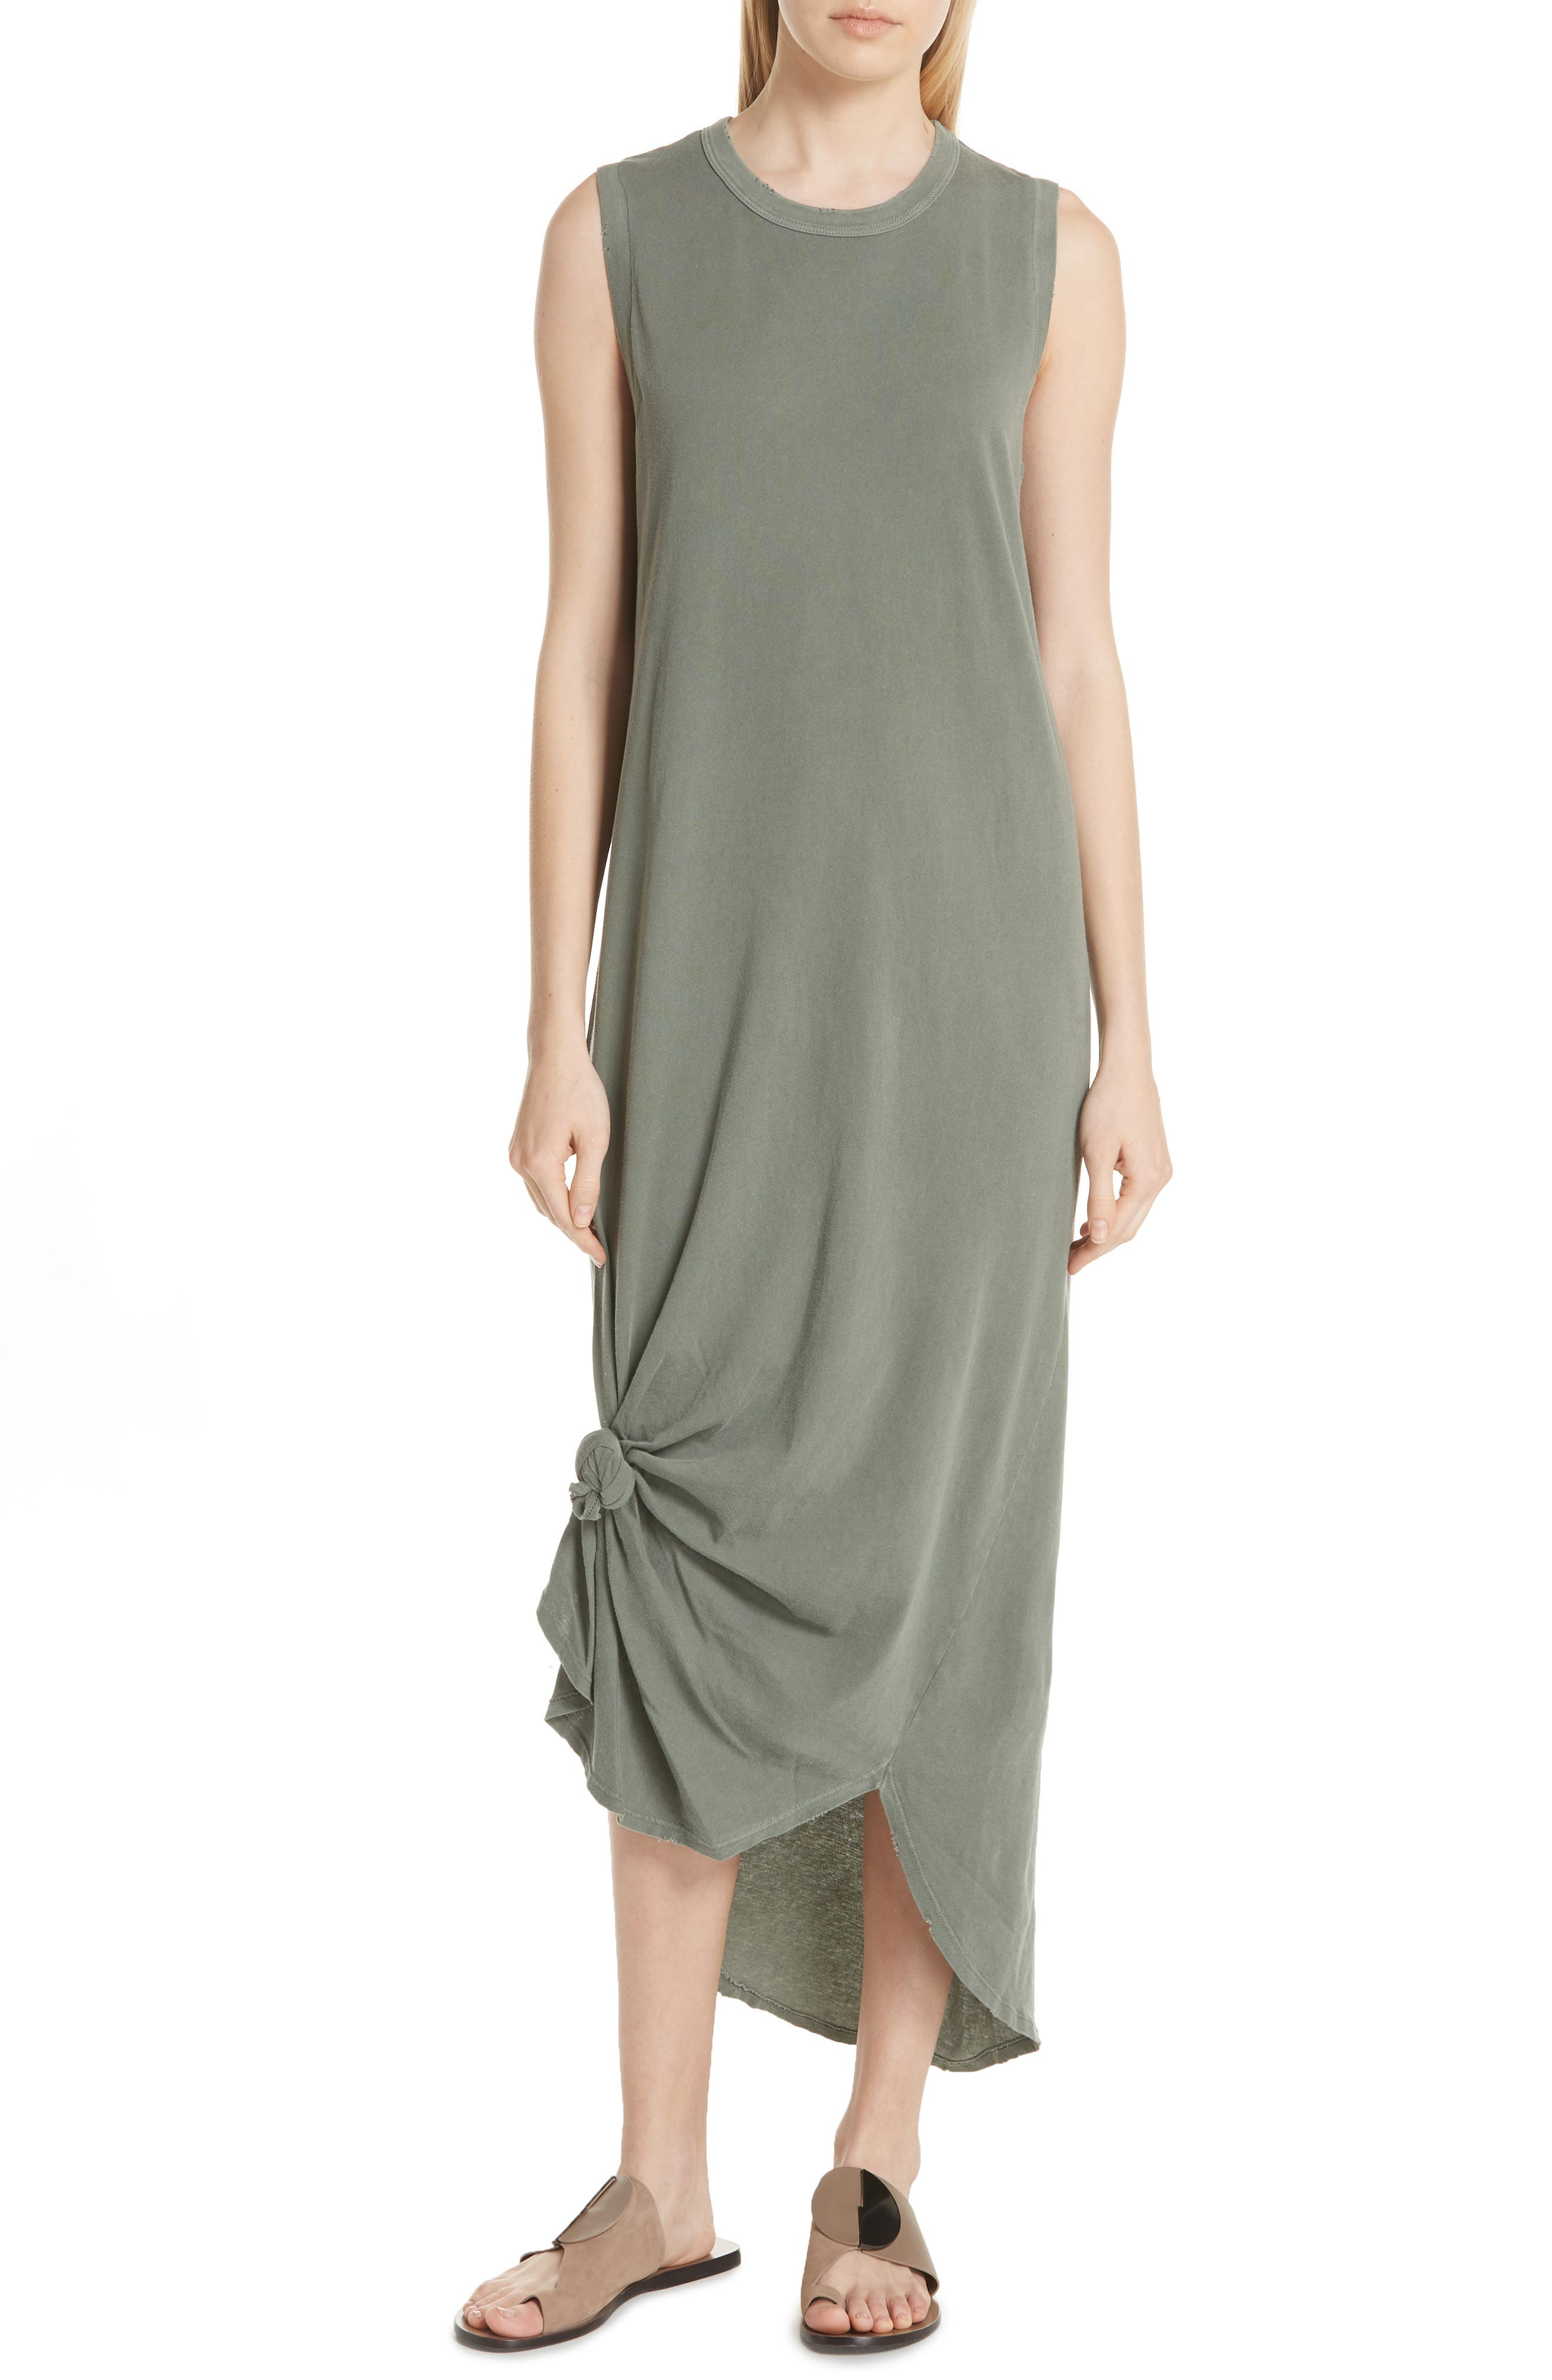 Knotted Muscle Tank Dress,                         Main,                         color, Army